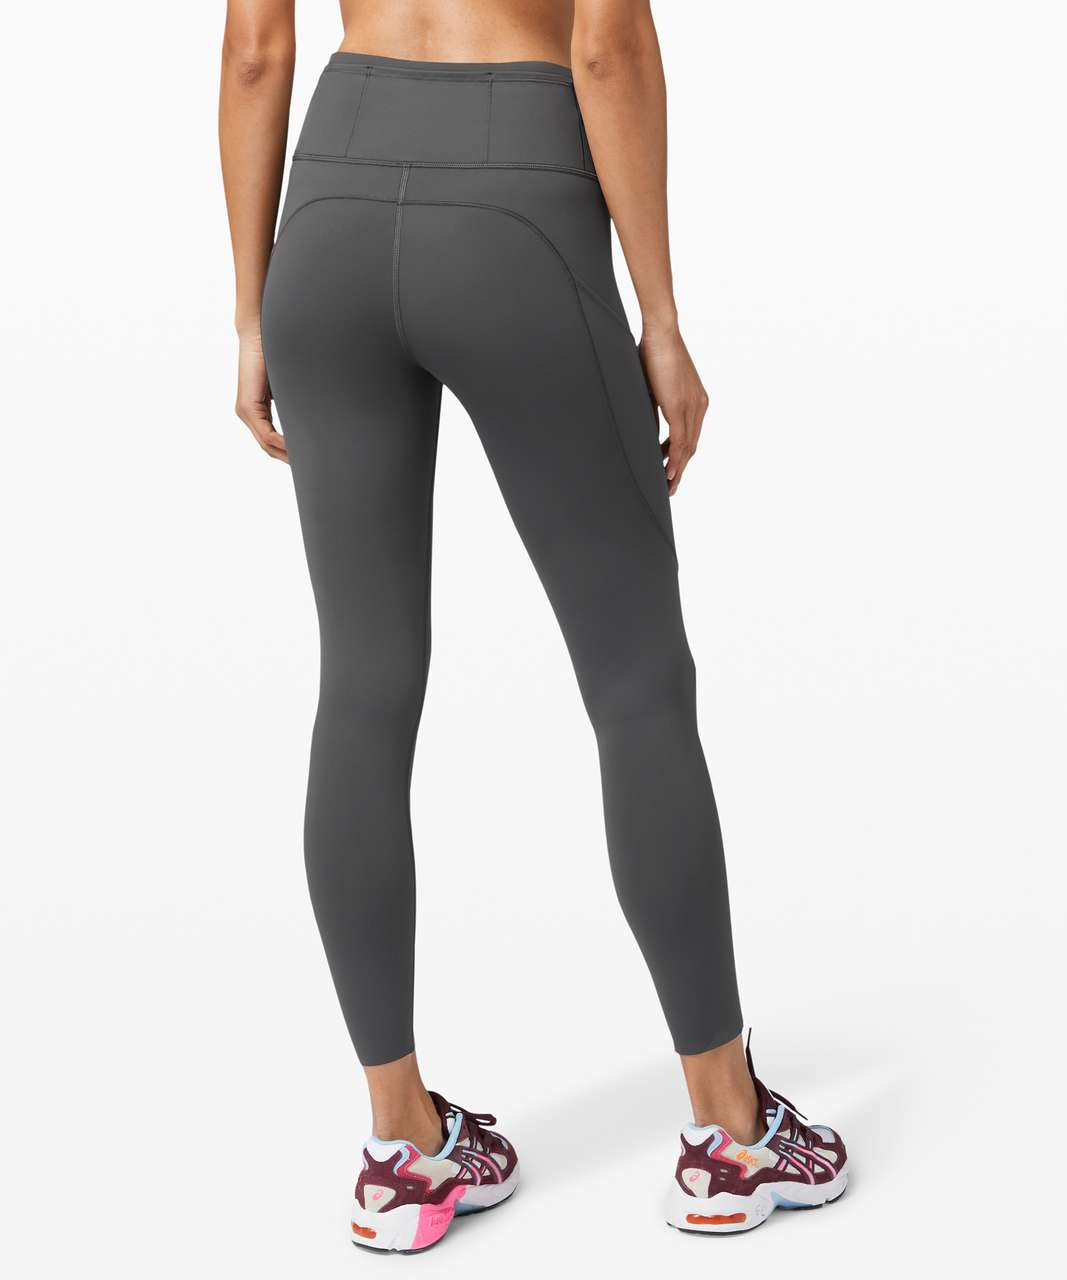 "Lululemon Fast and Free Tight II 25"" *Non-Reflective Nulux - Graphite Grey"